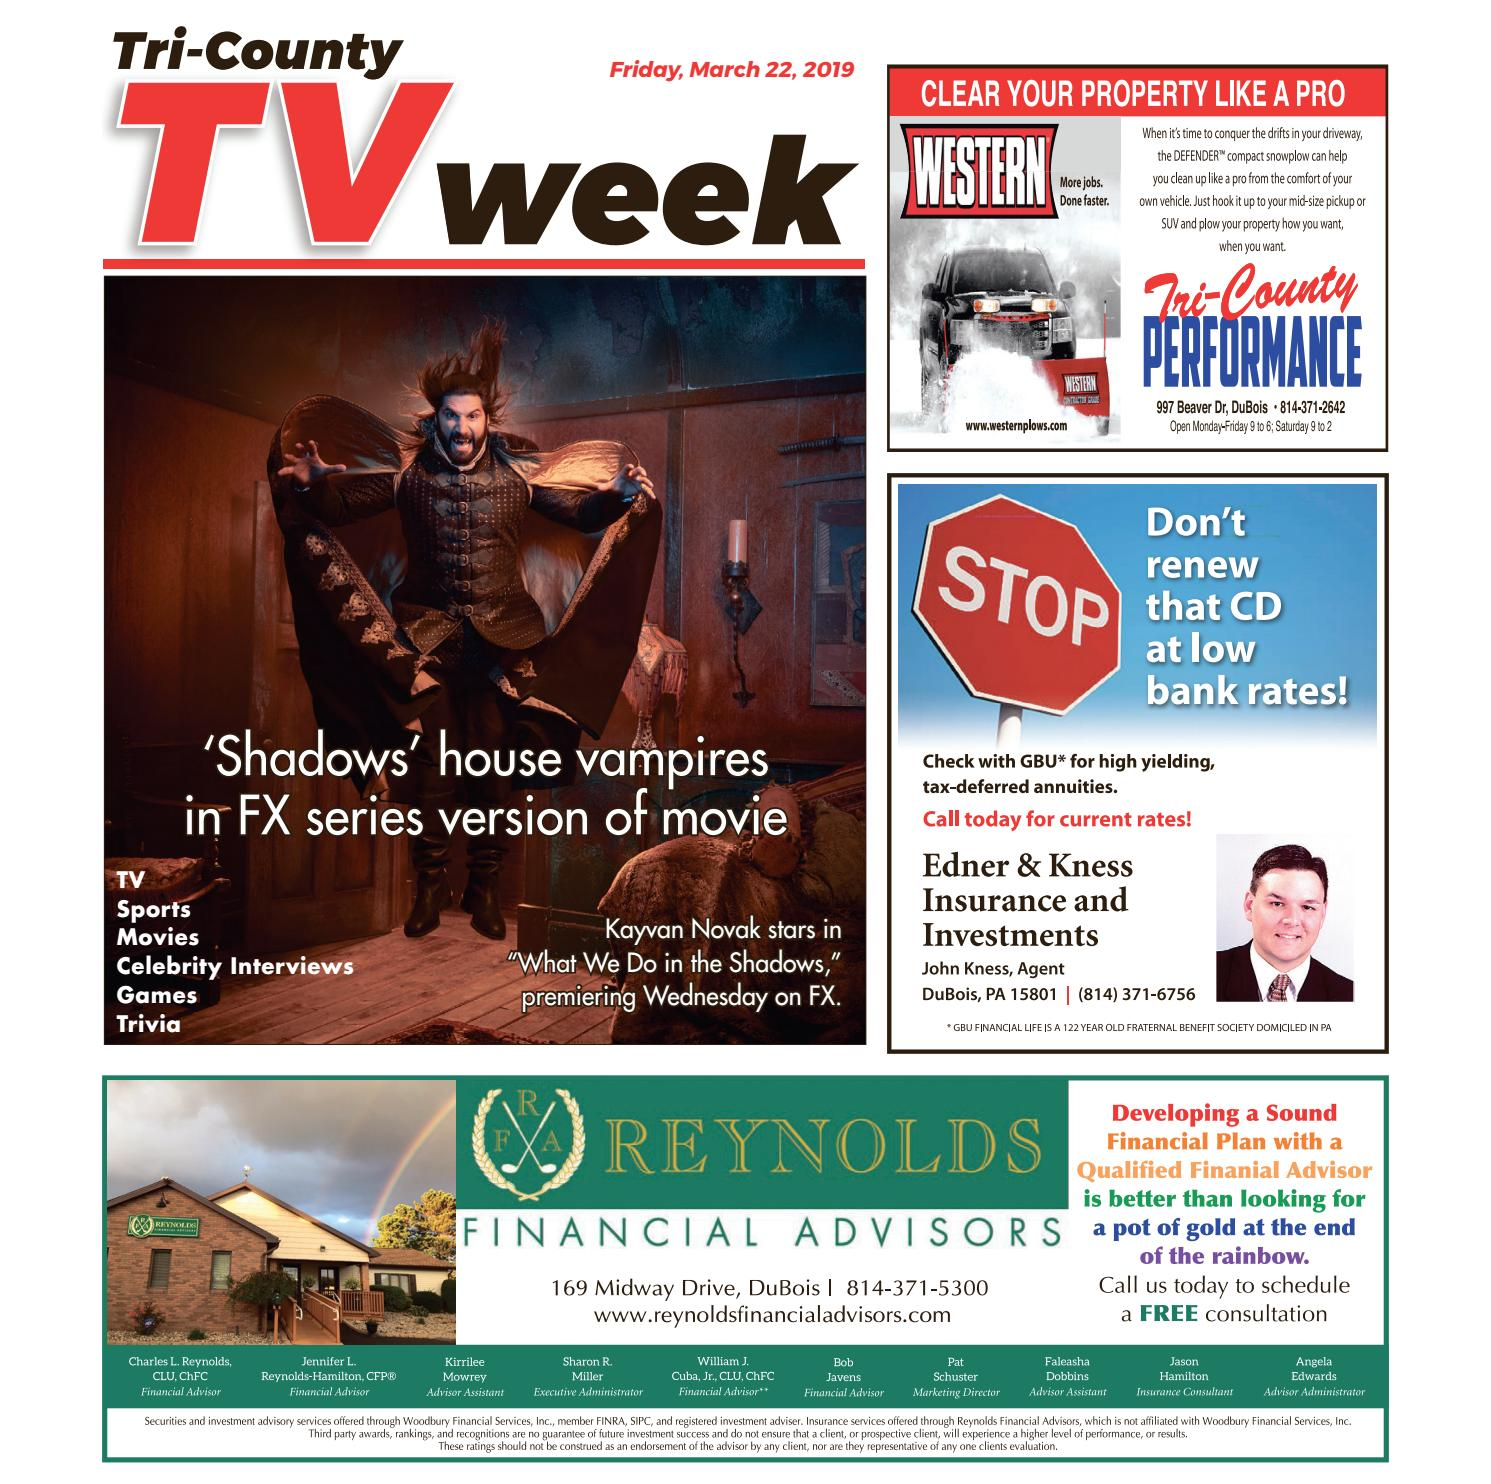 93709f1b0d TV Week, Friday, March 22, 2019 by Tri-County TV Week - issuu